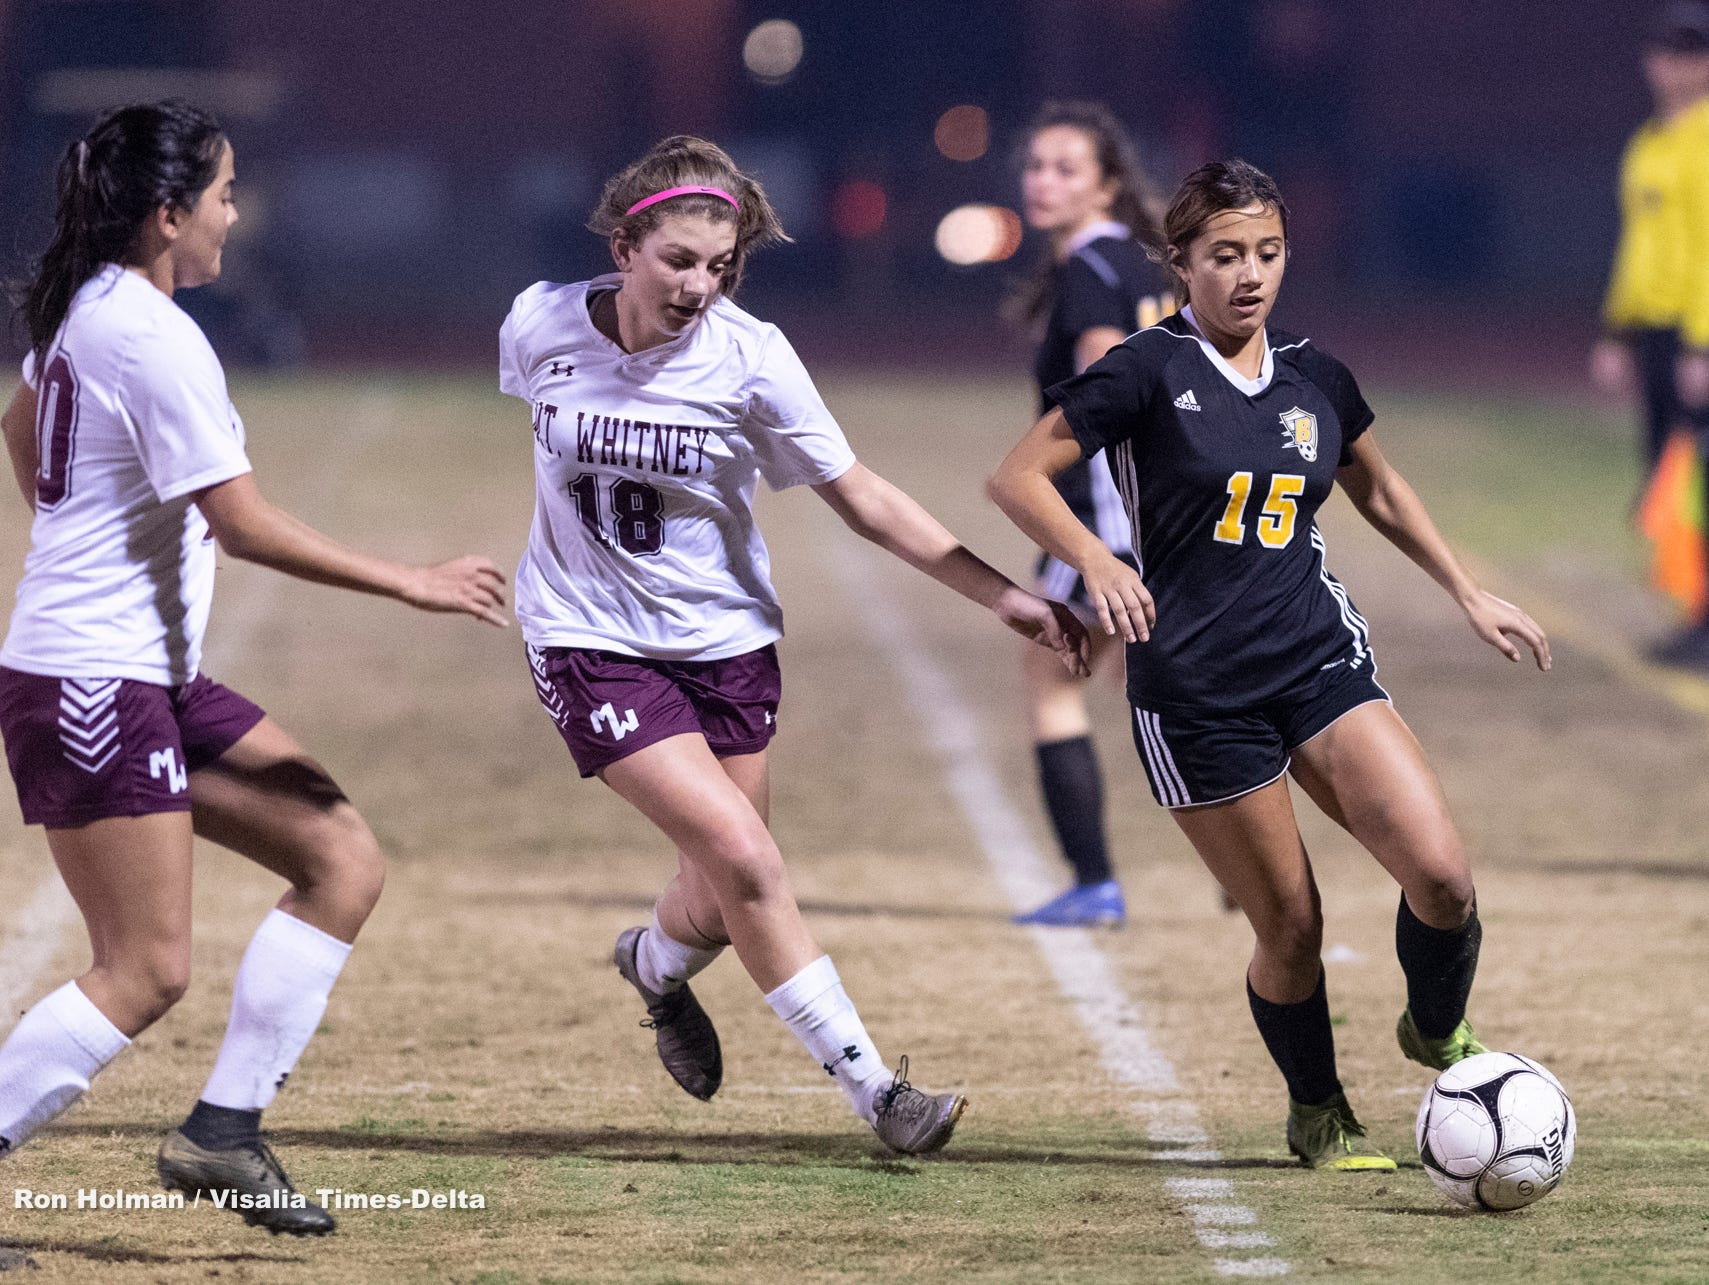 Golden West's Izabel Pelayo, right, gets a pass off ahead of Mt. Whitney's Arianda Villalobos, left, and Brooke Johnson in a girls soccer game on Wednesday, January 23, 2019.